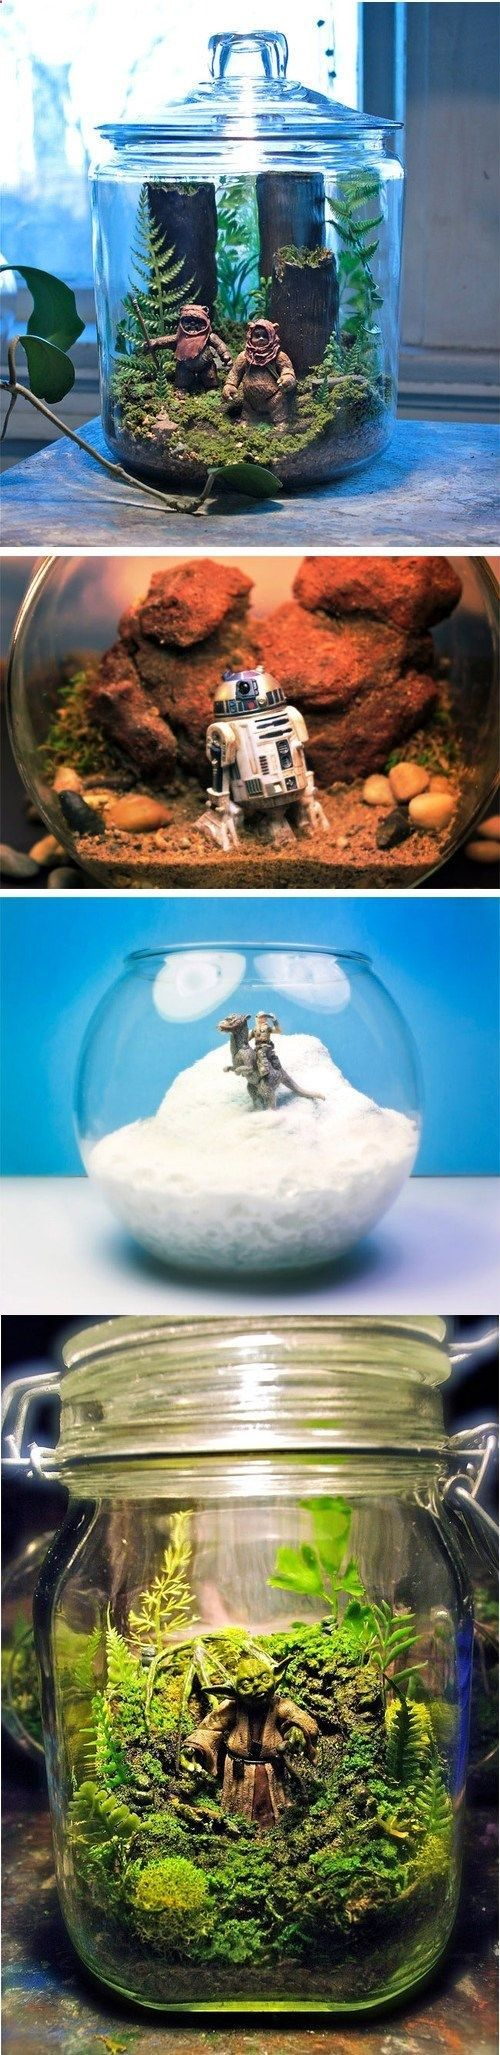 Awesome Star Wars Terrariums.. WIFE OF THE YEAR AWARDS!!! http://amzn.to/2tmWHG9